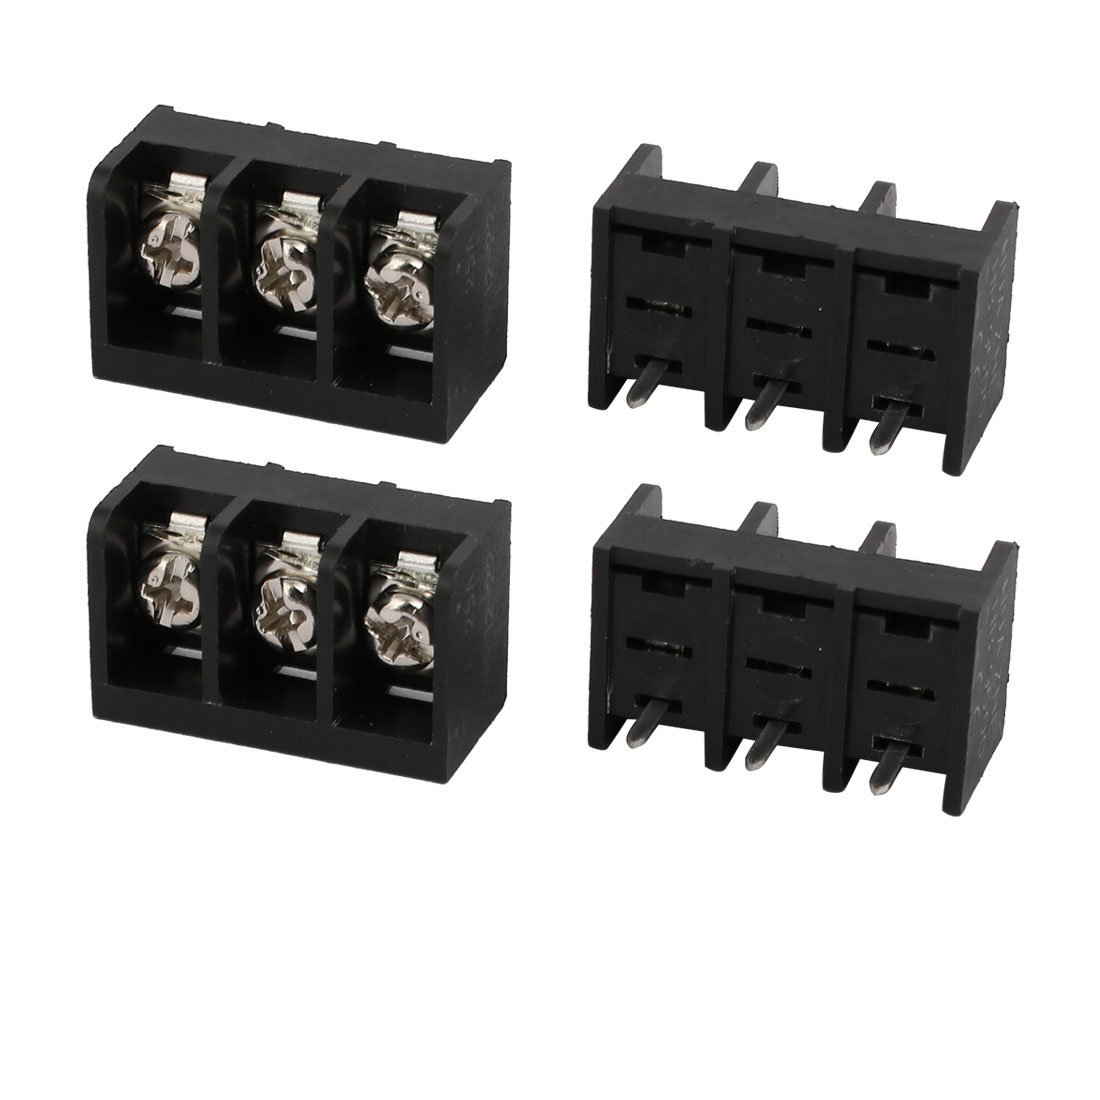 uxcell 4 Pcs 9.5mm Pitch 3 Terminals AC 300V 25A Male Screw Barrier Terminal Block Connector